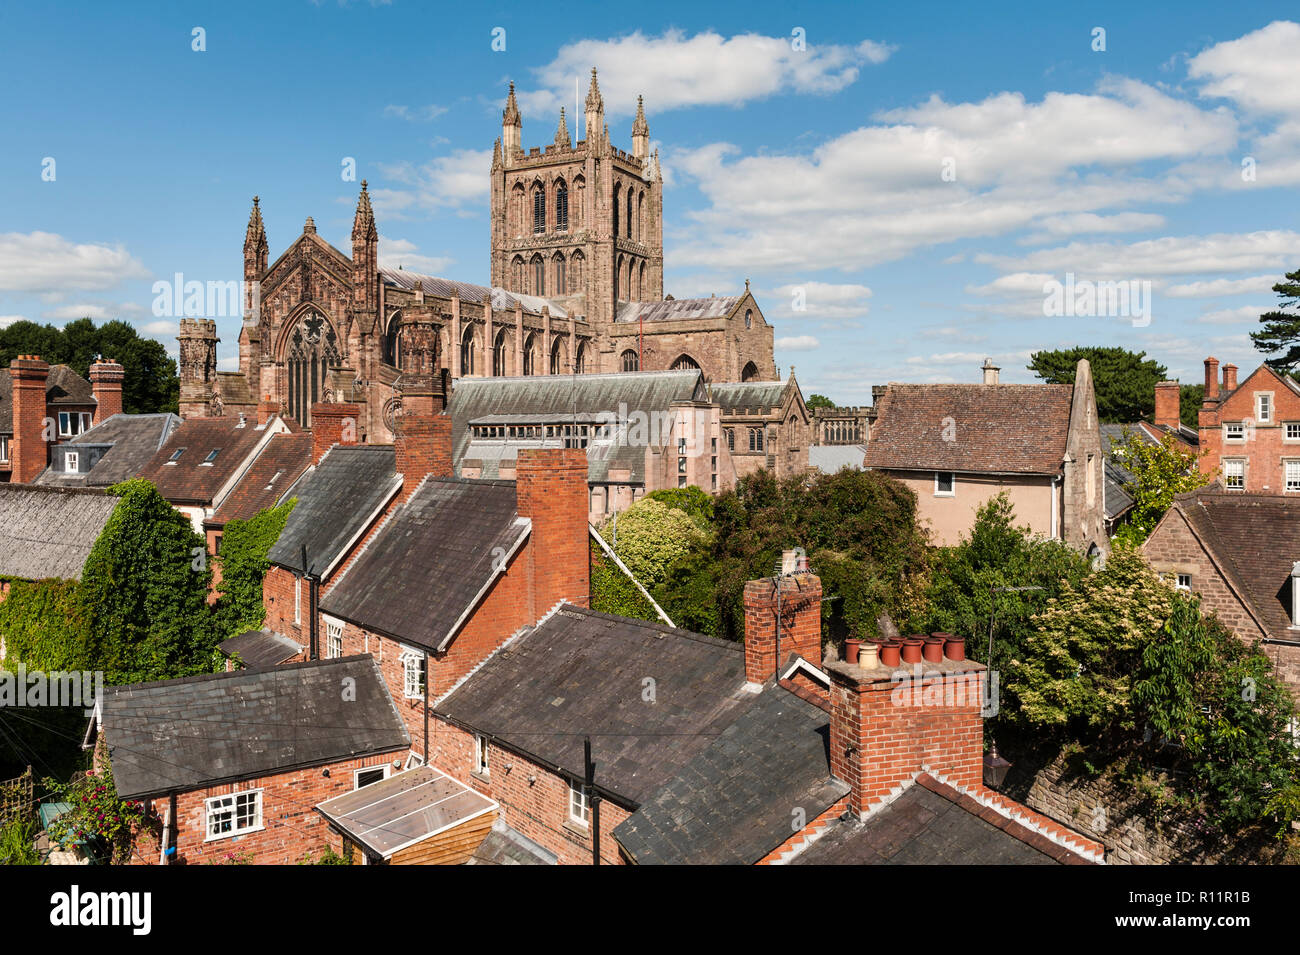 Hereford Cathedral, dating from 1079, dominates the city.